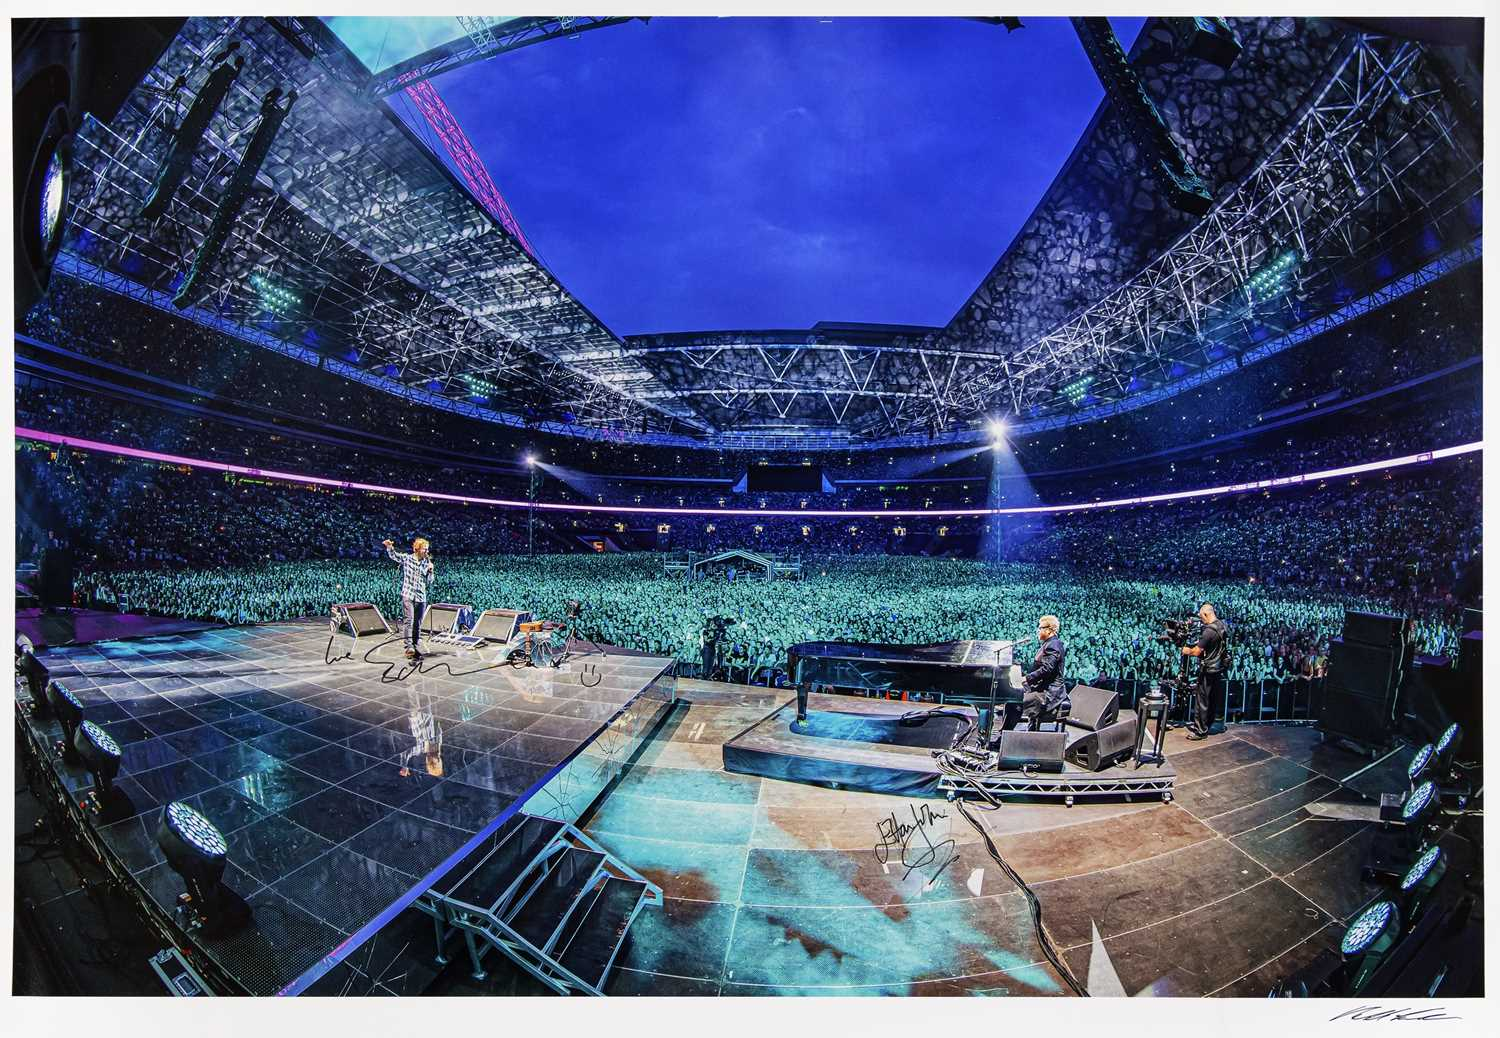 A signed Ralph Larmann Photograph of Ed Sheeran and Sir Elton John Performing Together at Wembley